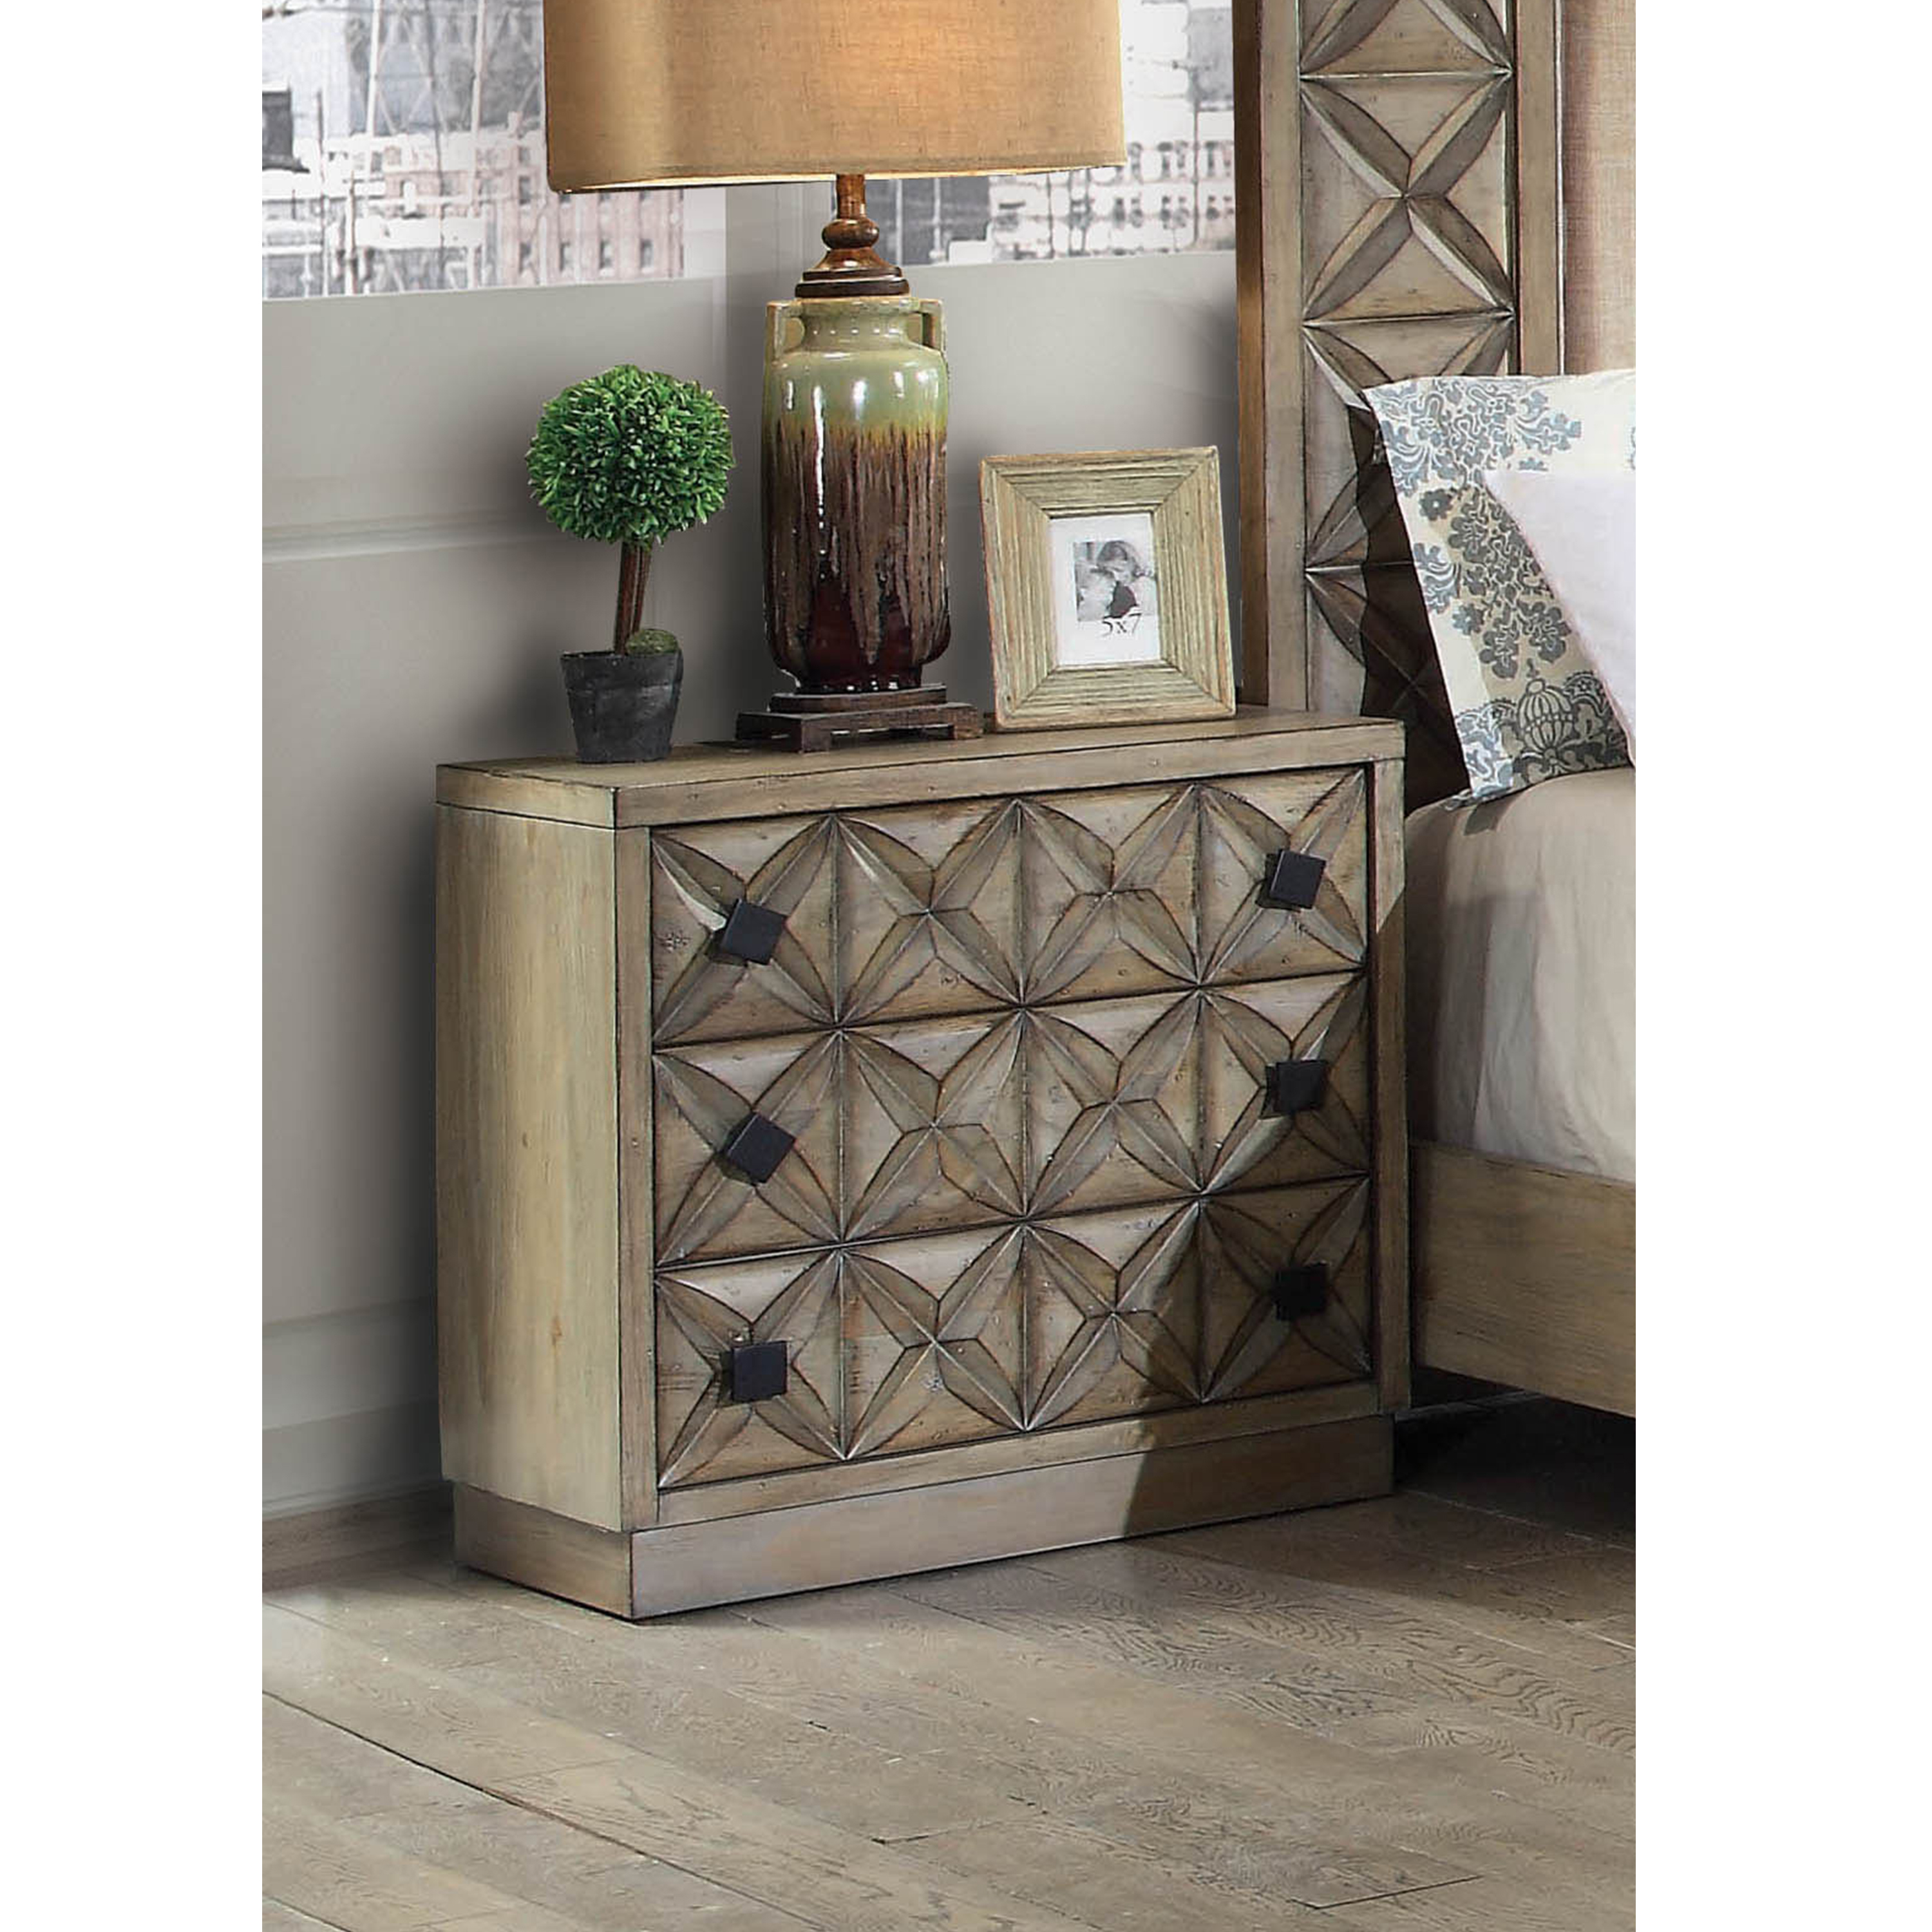 Furniture of America Palermo Geometric Carved Nightstand